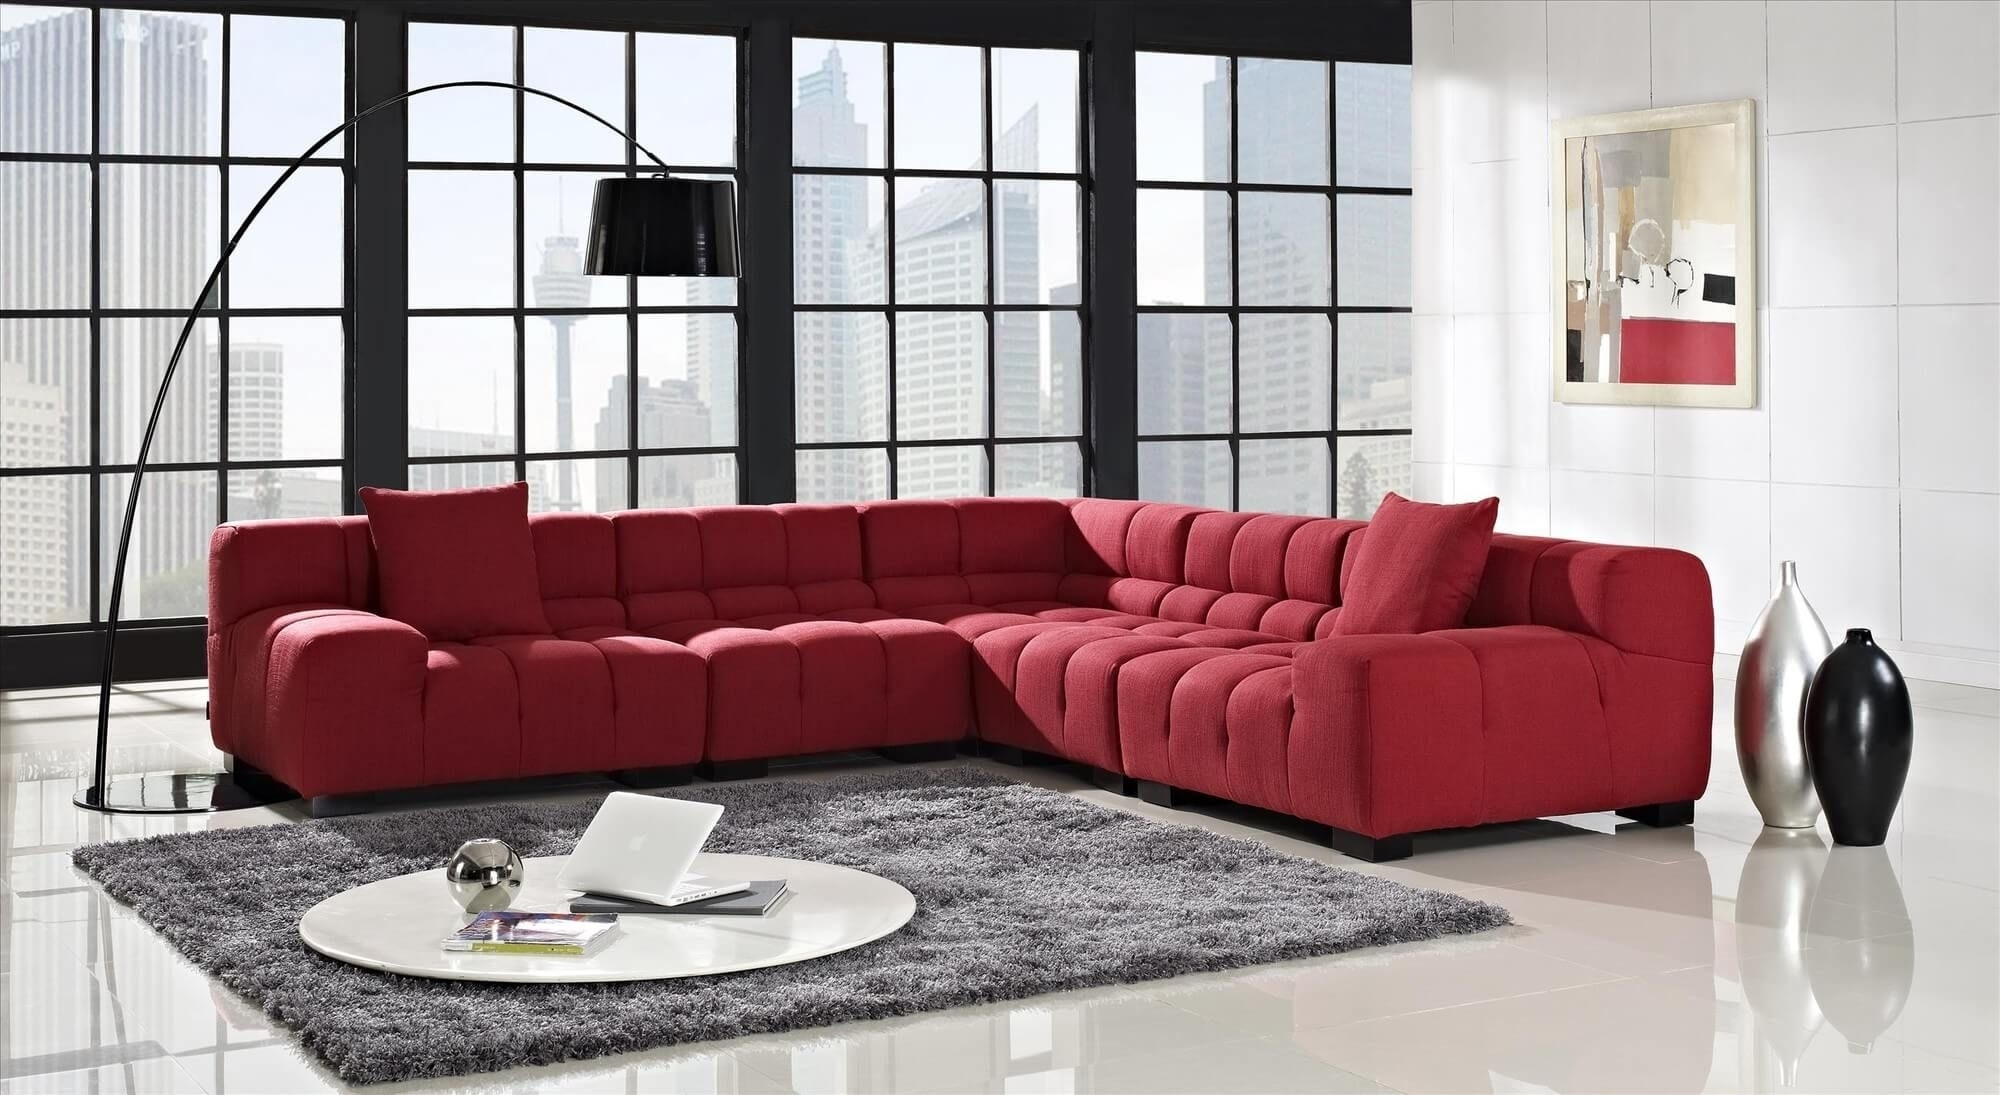 18 Stylish Modern Red Sectional Sofas   Solid Wood, Upholstery And Woods Regarding Red Sectional Sofas (Image 1 of 10)